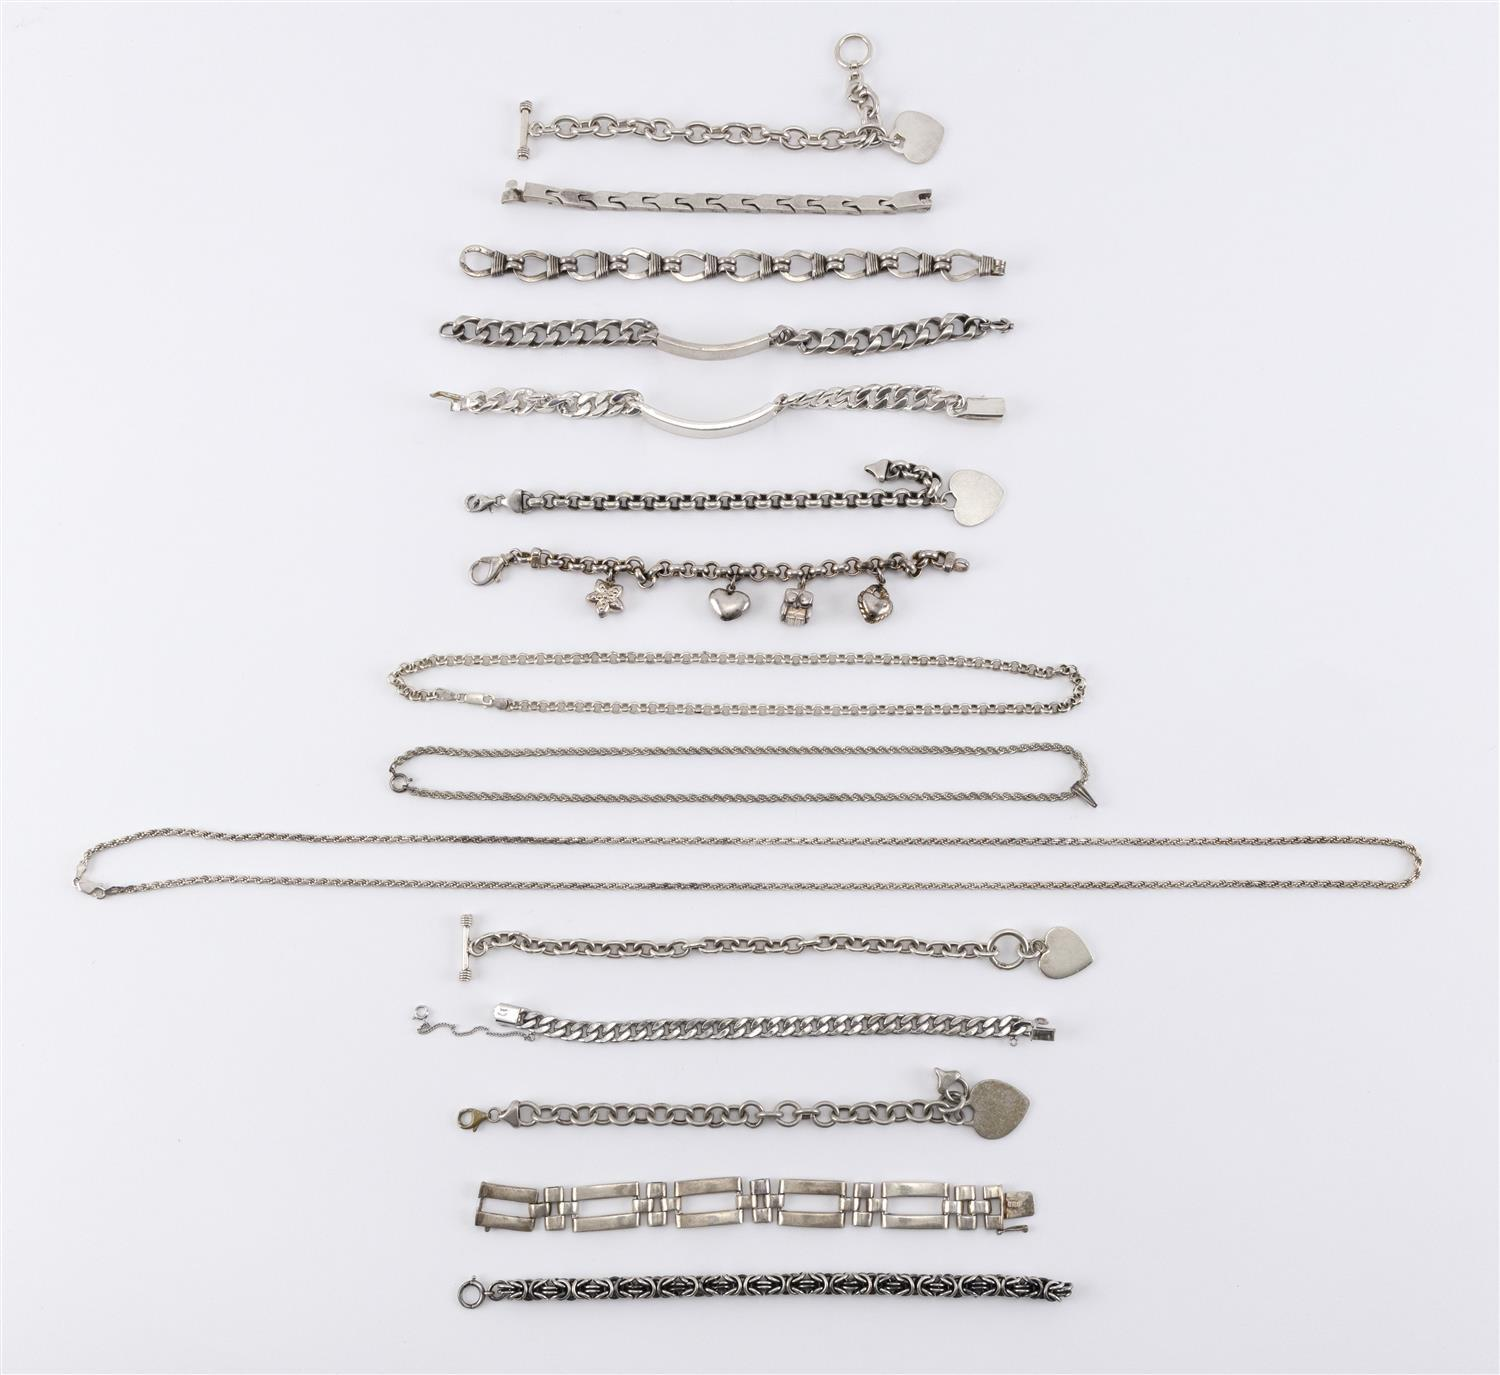 FIFTEEN PIECES OF SILVER JEWELRY Three rope or chain necklaces and twelve link bracelets, many in Tiffany style. Some marked sterlin...